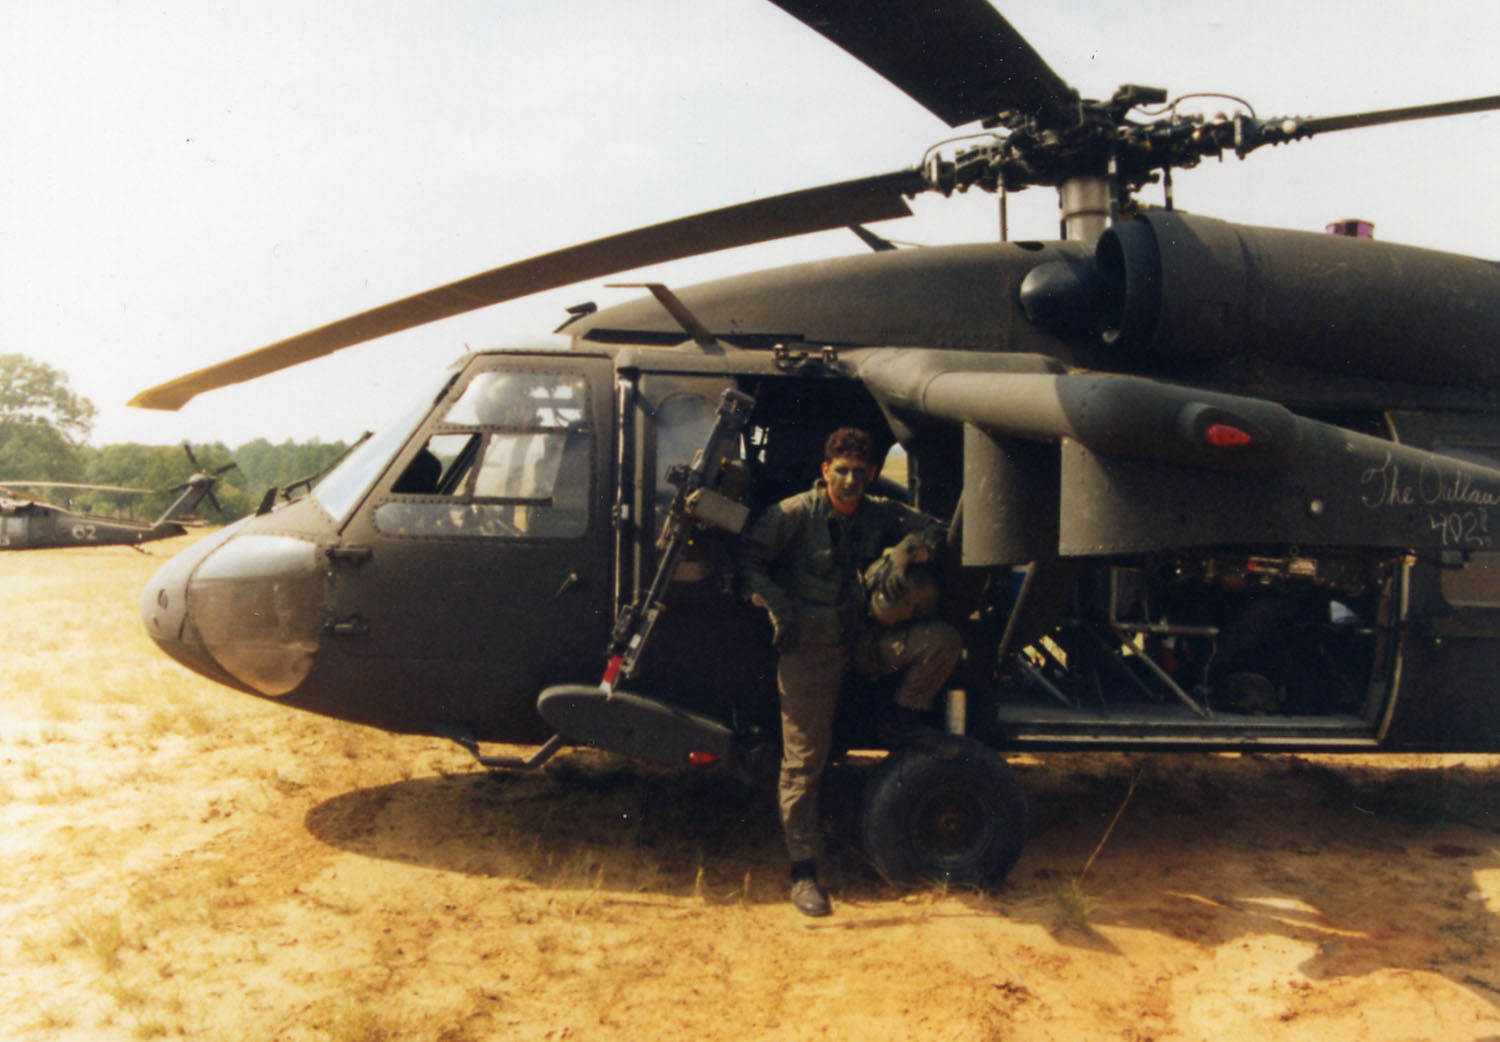 World history and girls soccer coach SGT Charles Johnson served in the Army as a UH-60 Black Hawk crew chief